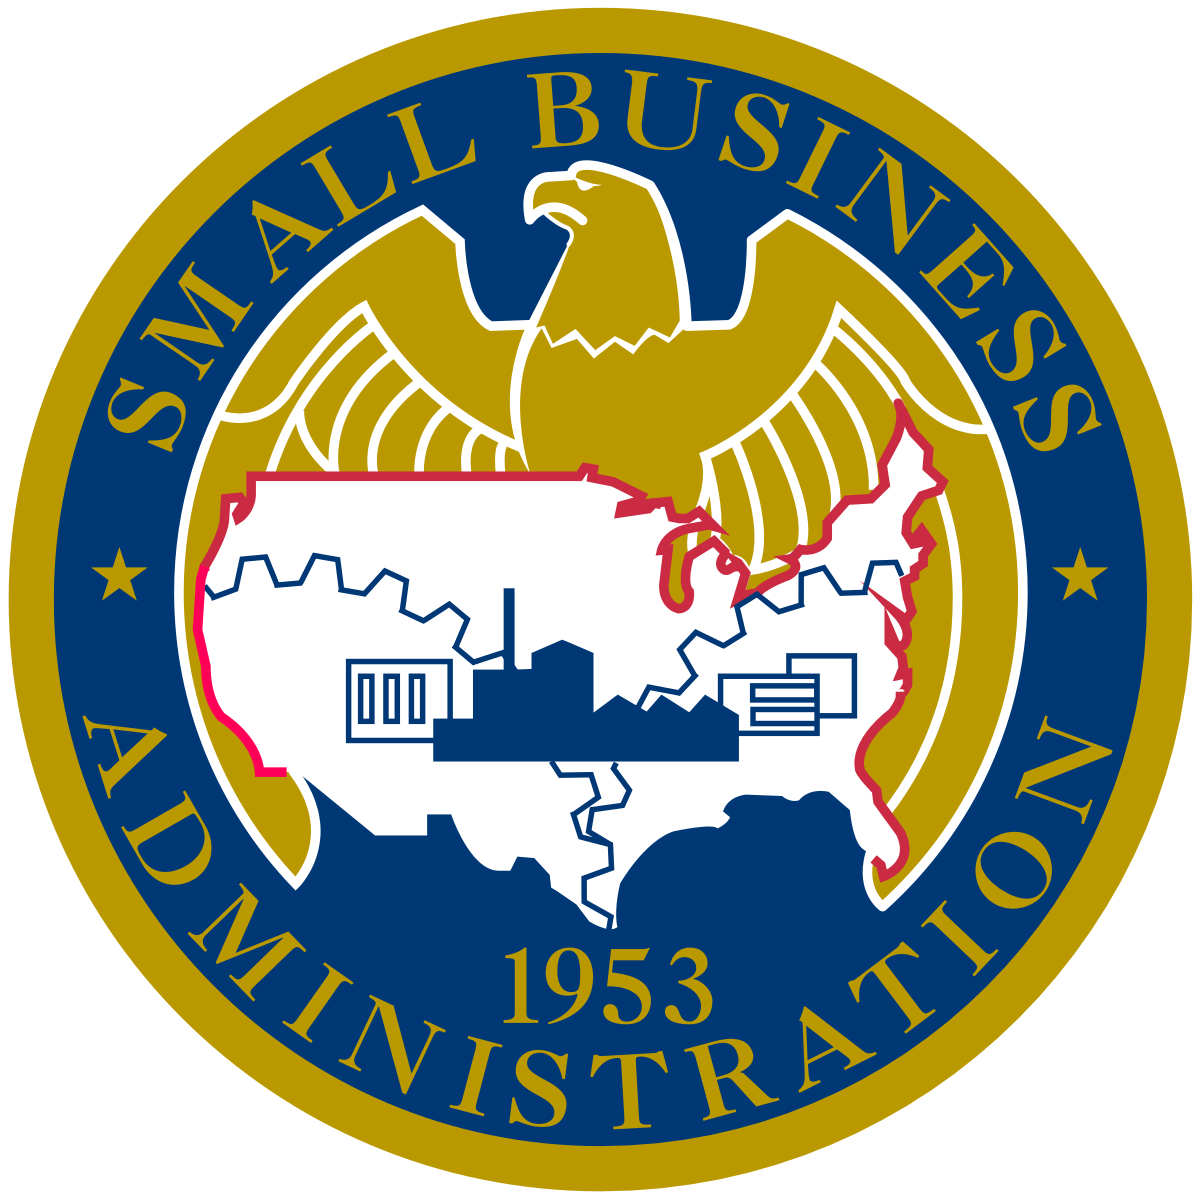 Small Business Administration - Administrator's Award for Excellence - 2000, Regional Subcontractor of the Year - 2001